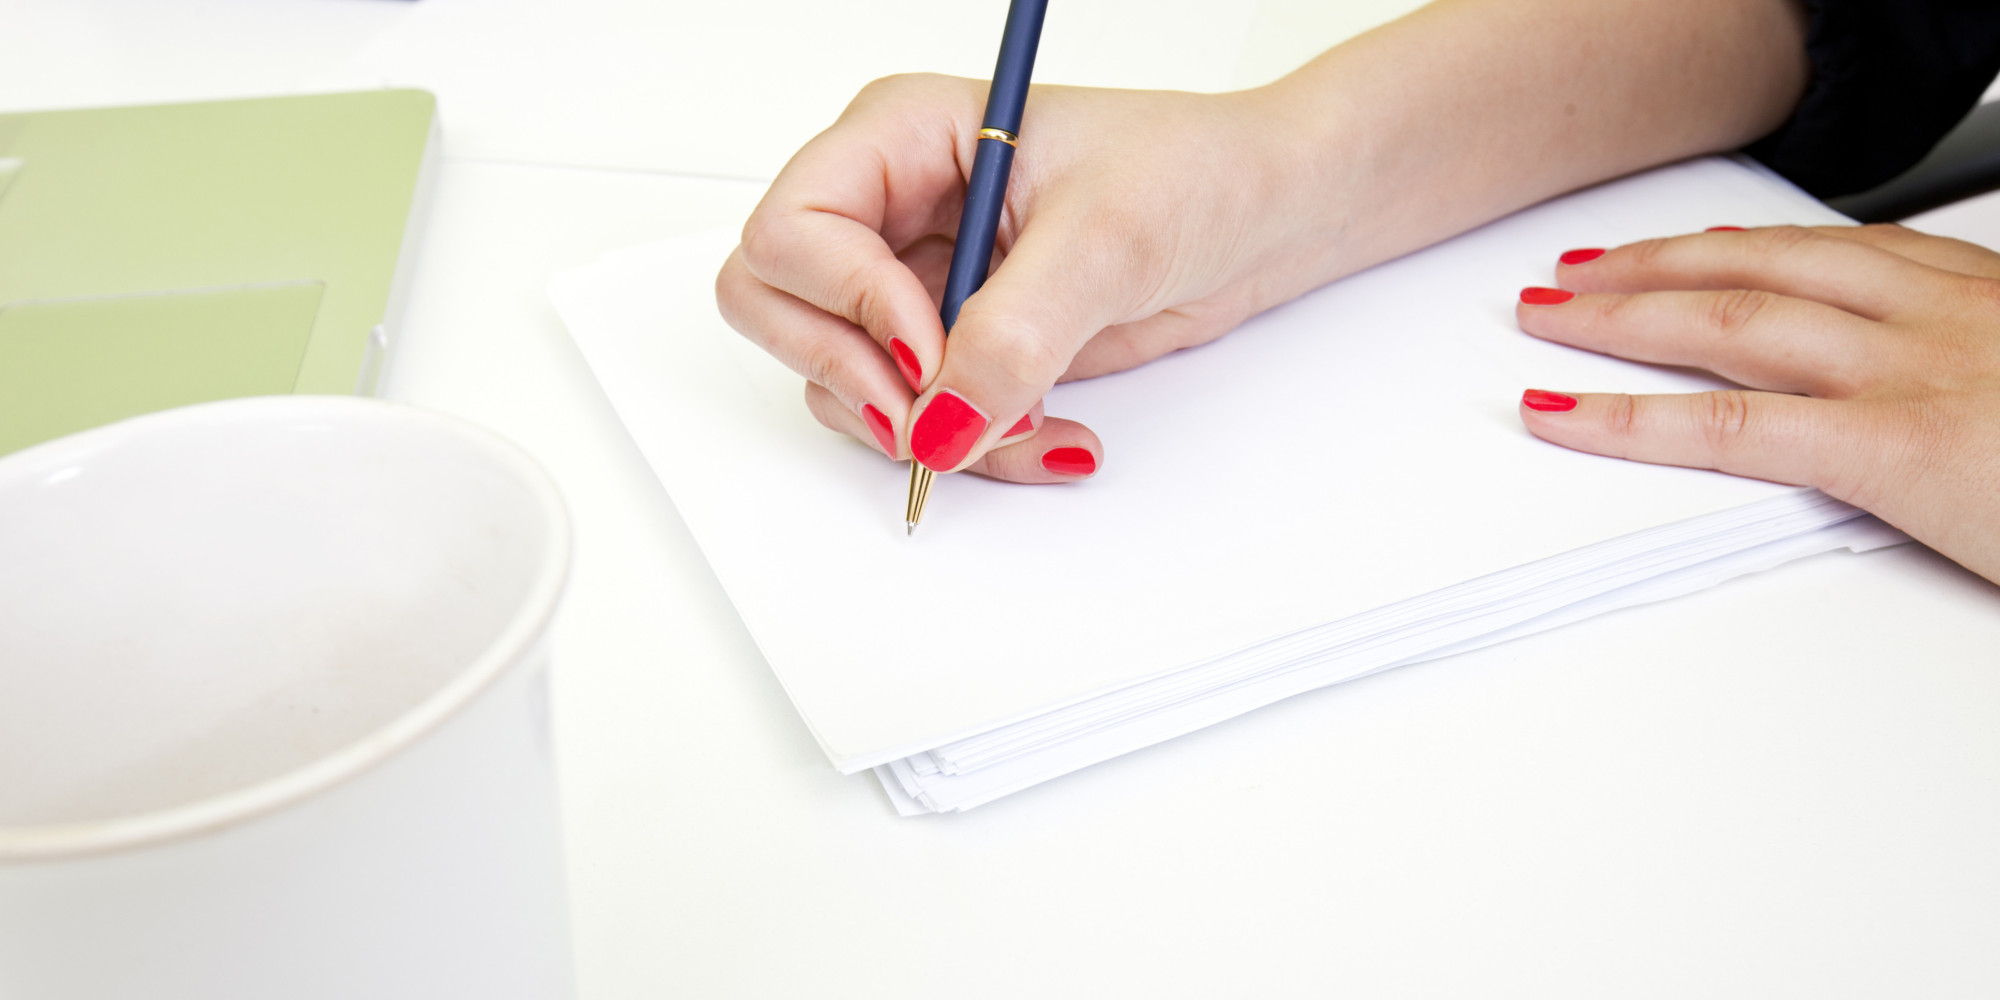 How To Write Your Manifesto In 5 Steps | HuffPost